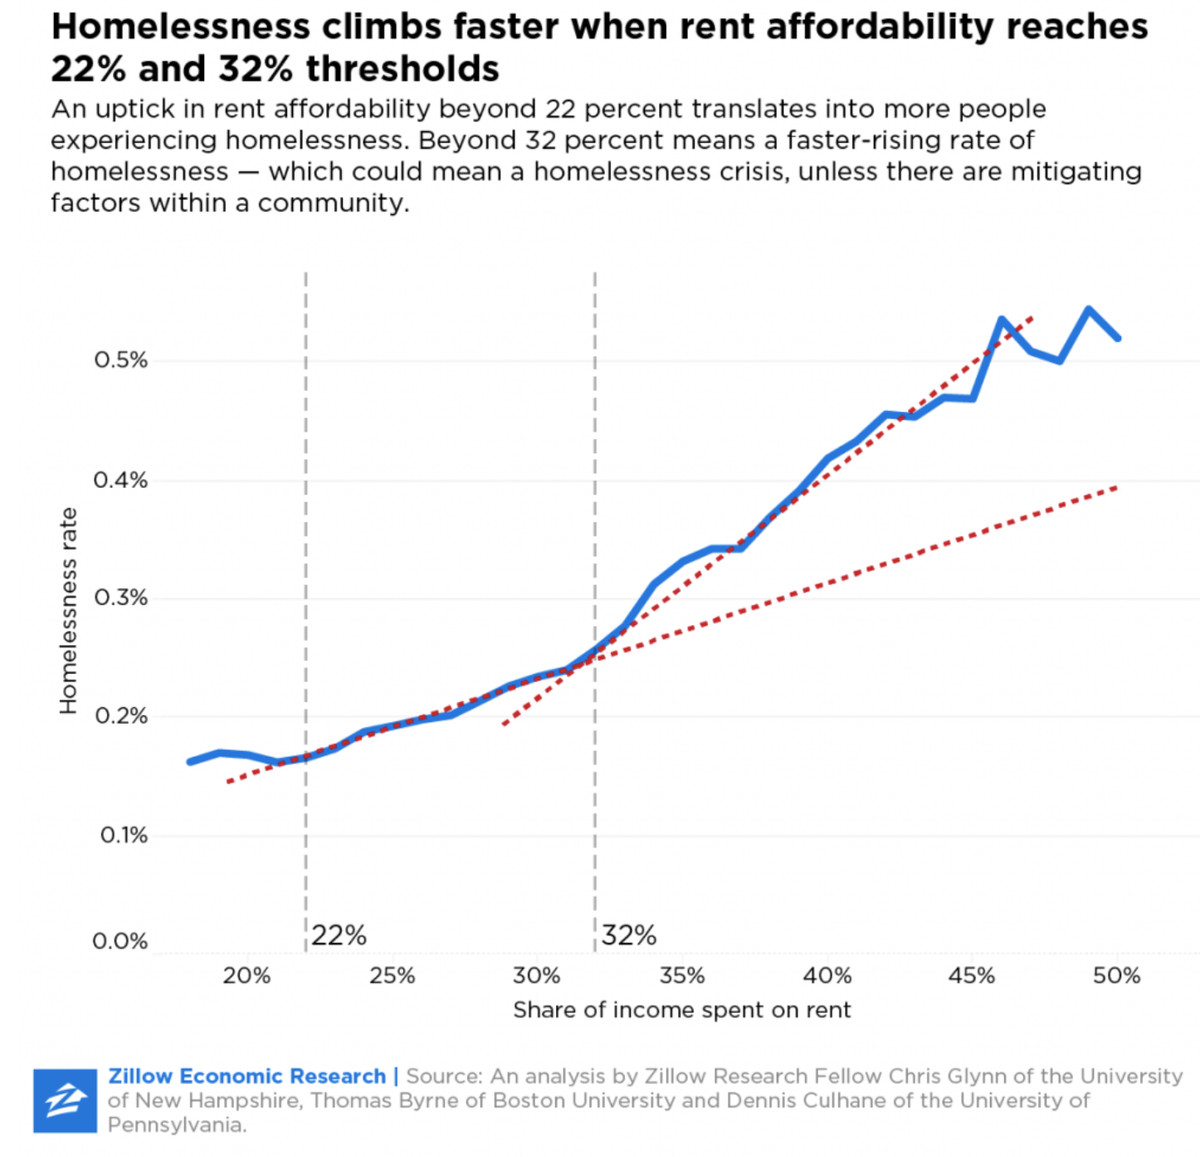 A chart showing a correlation between levels of homelessness and a lack of area rent affordability.